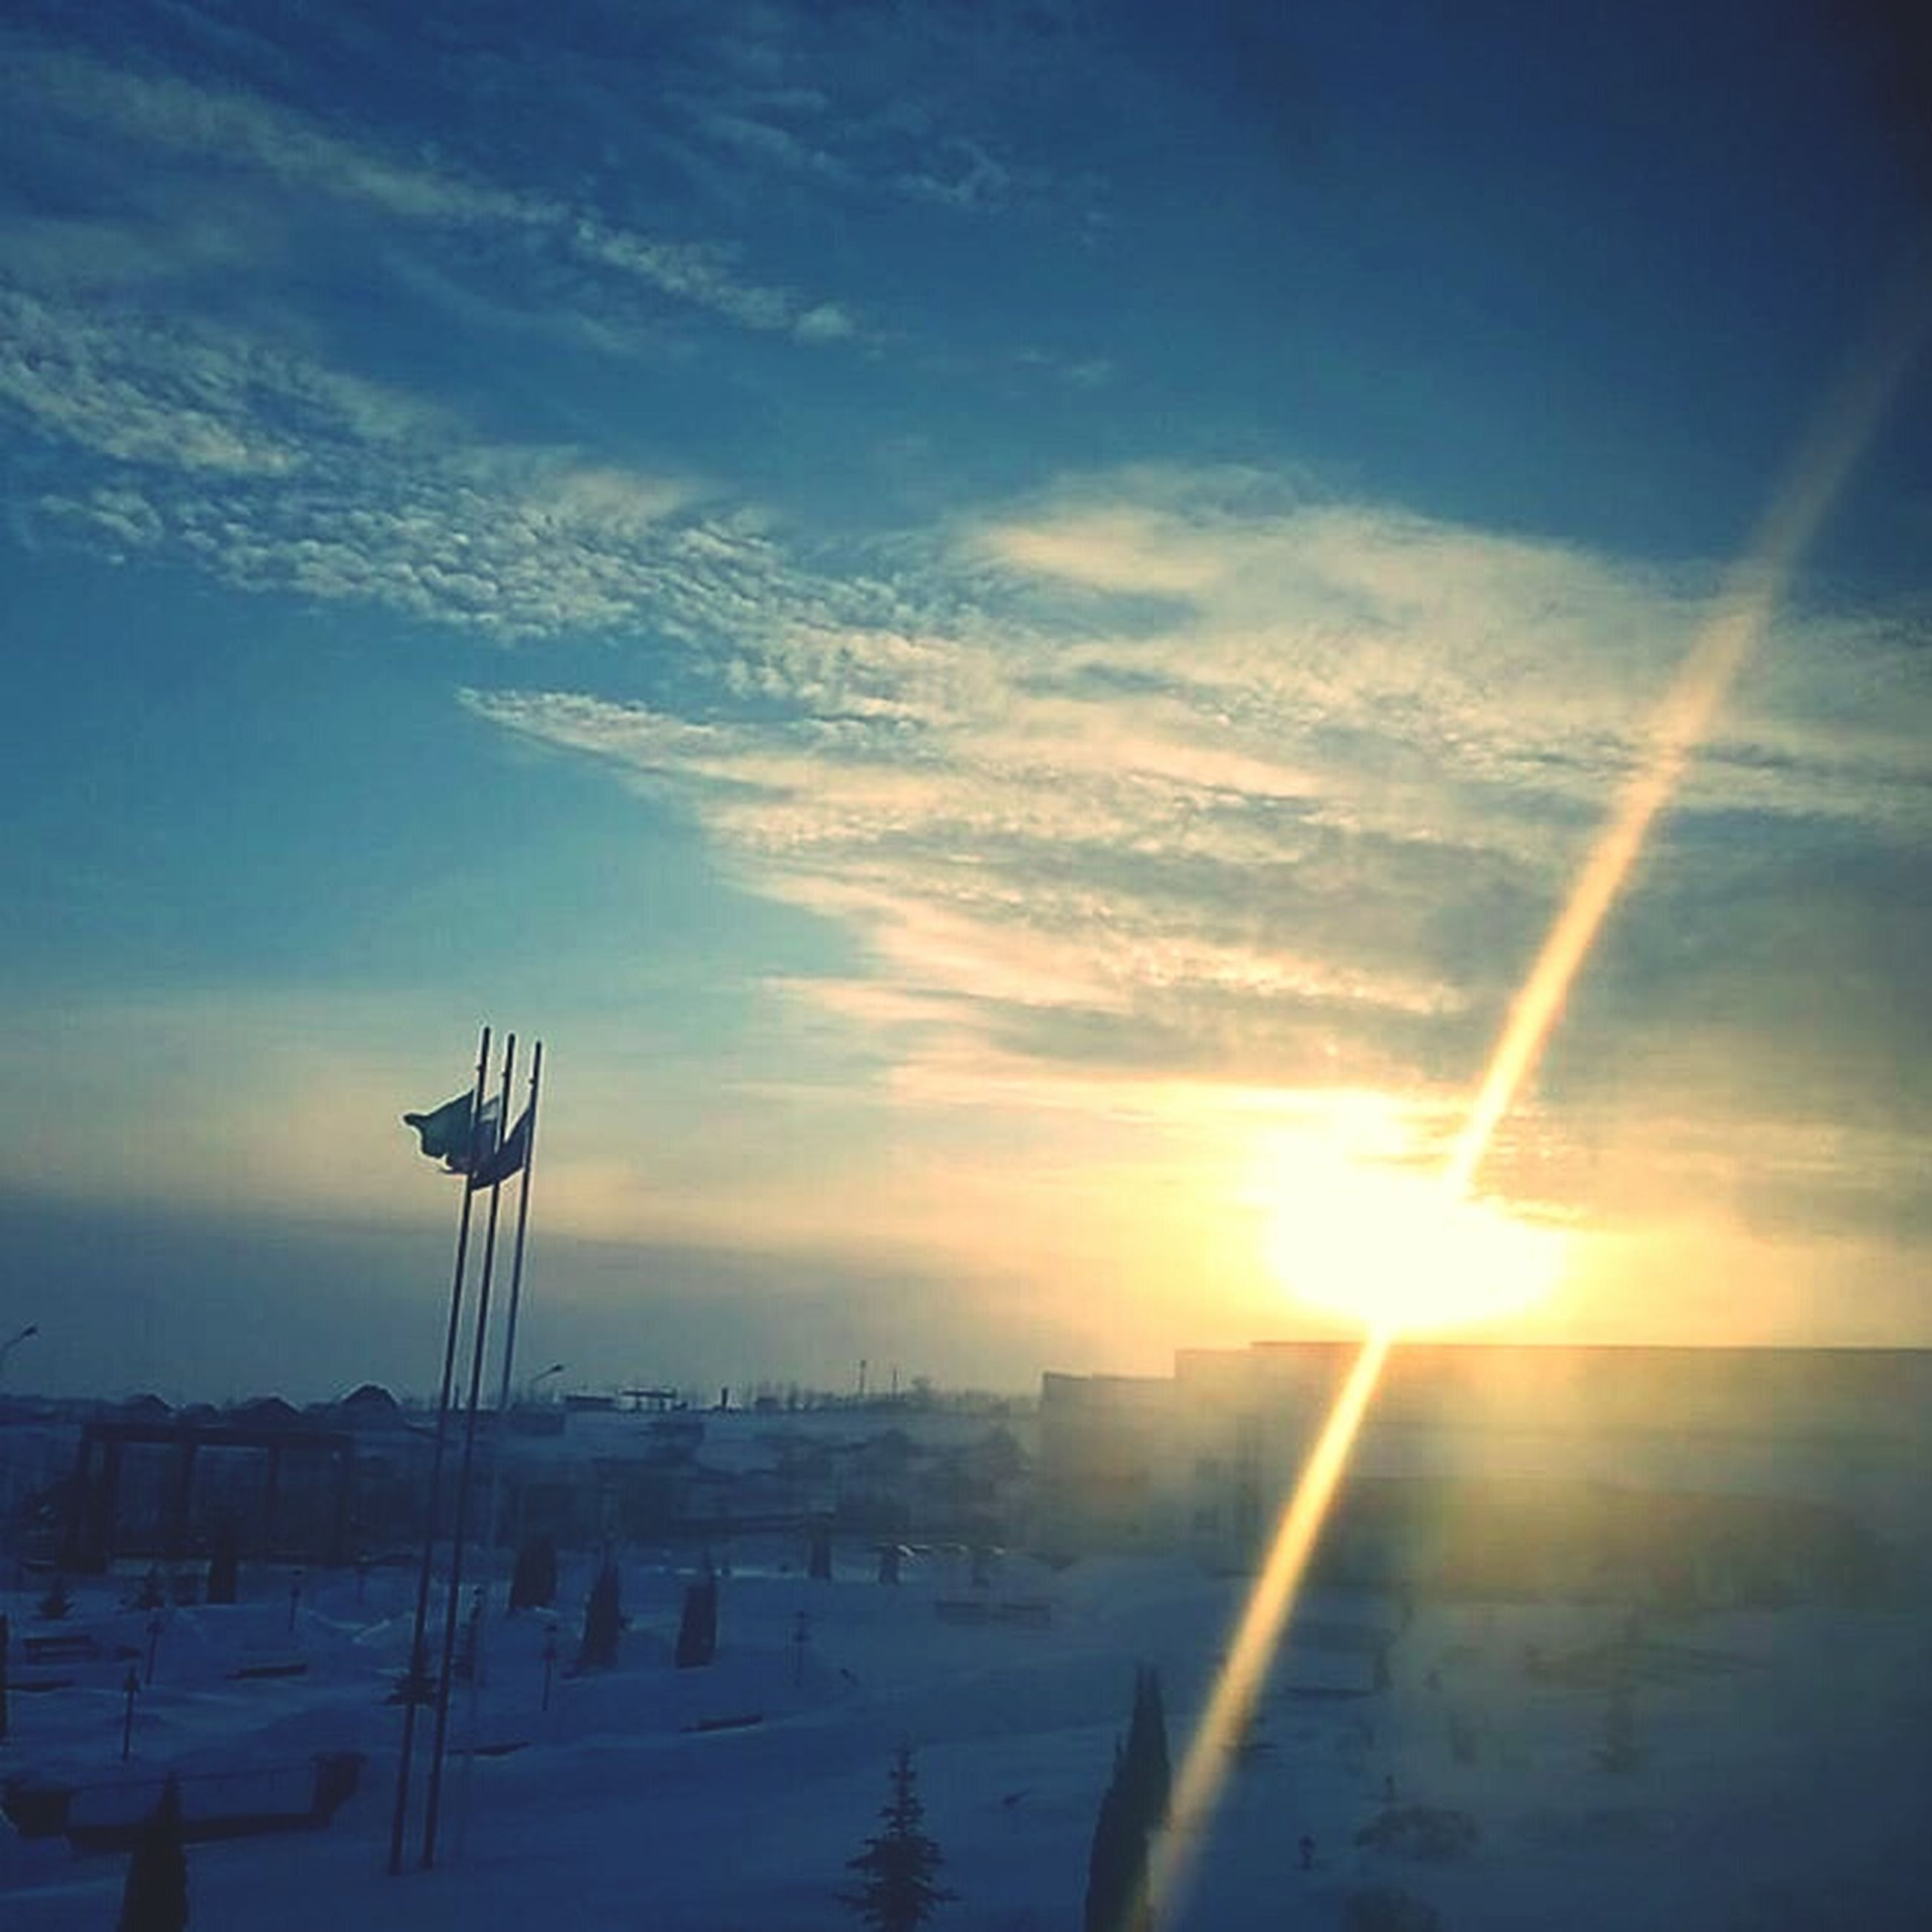 cold temperature, snow, winter, sunset, beauty in nature, nature, sunlight, sky, tranquility, no people, scenics, tranquil scene, sunbeam, cloud - sky, outdoors, tree, day